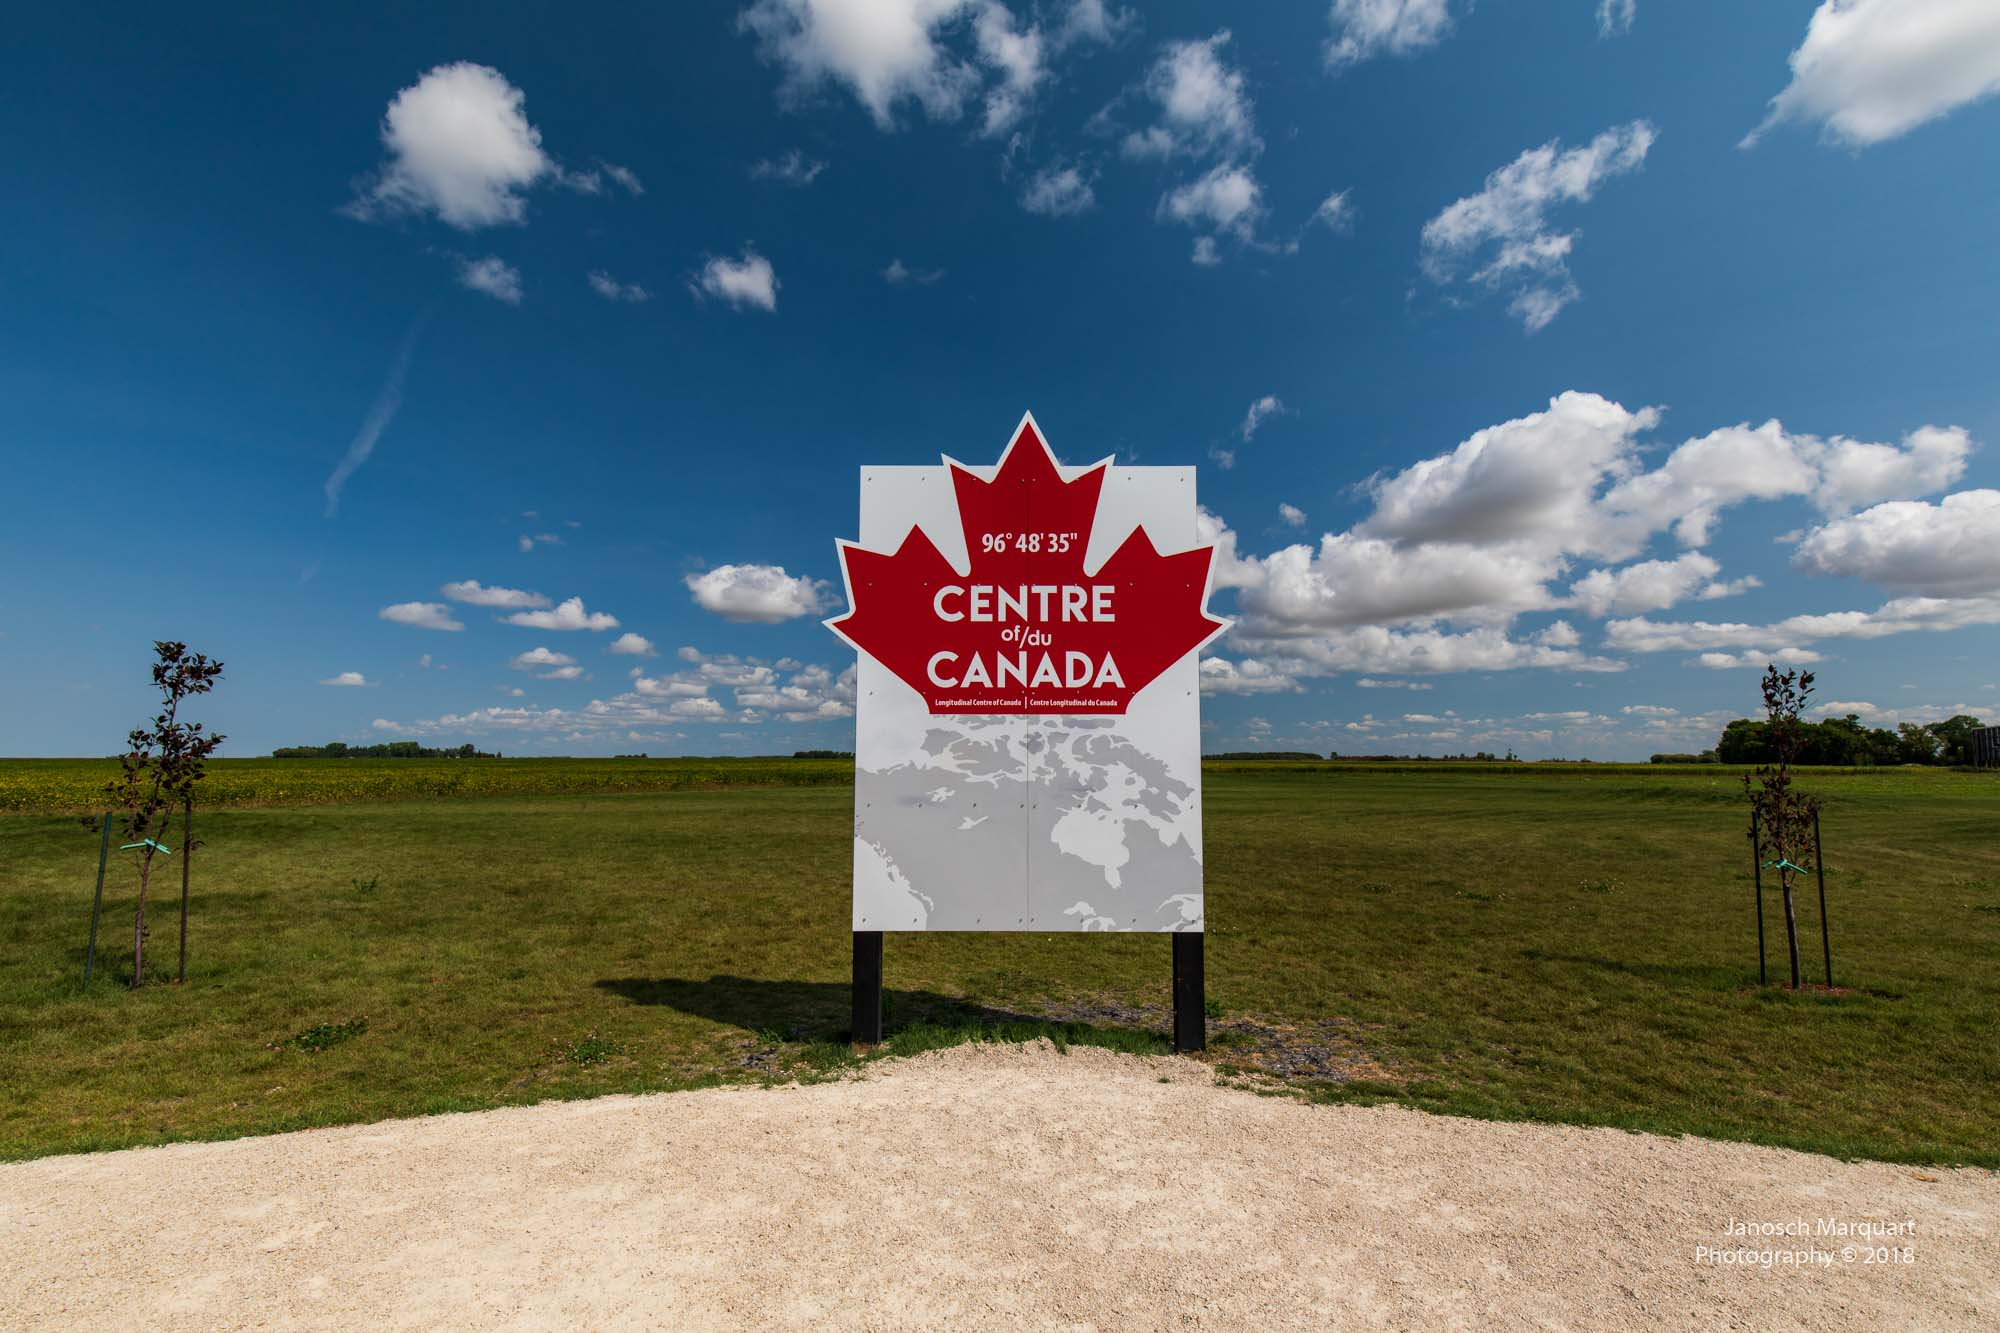 Center of Canada Schild in Manitoba.